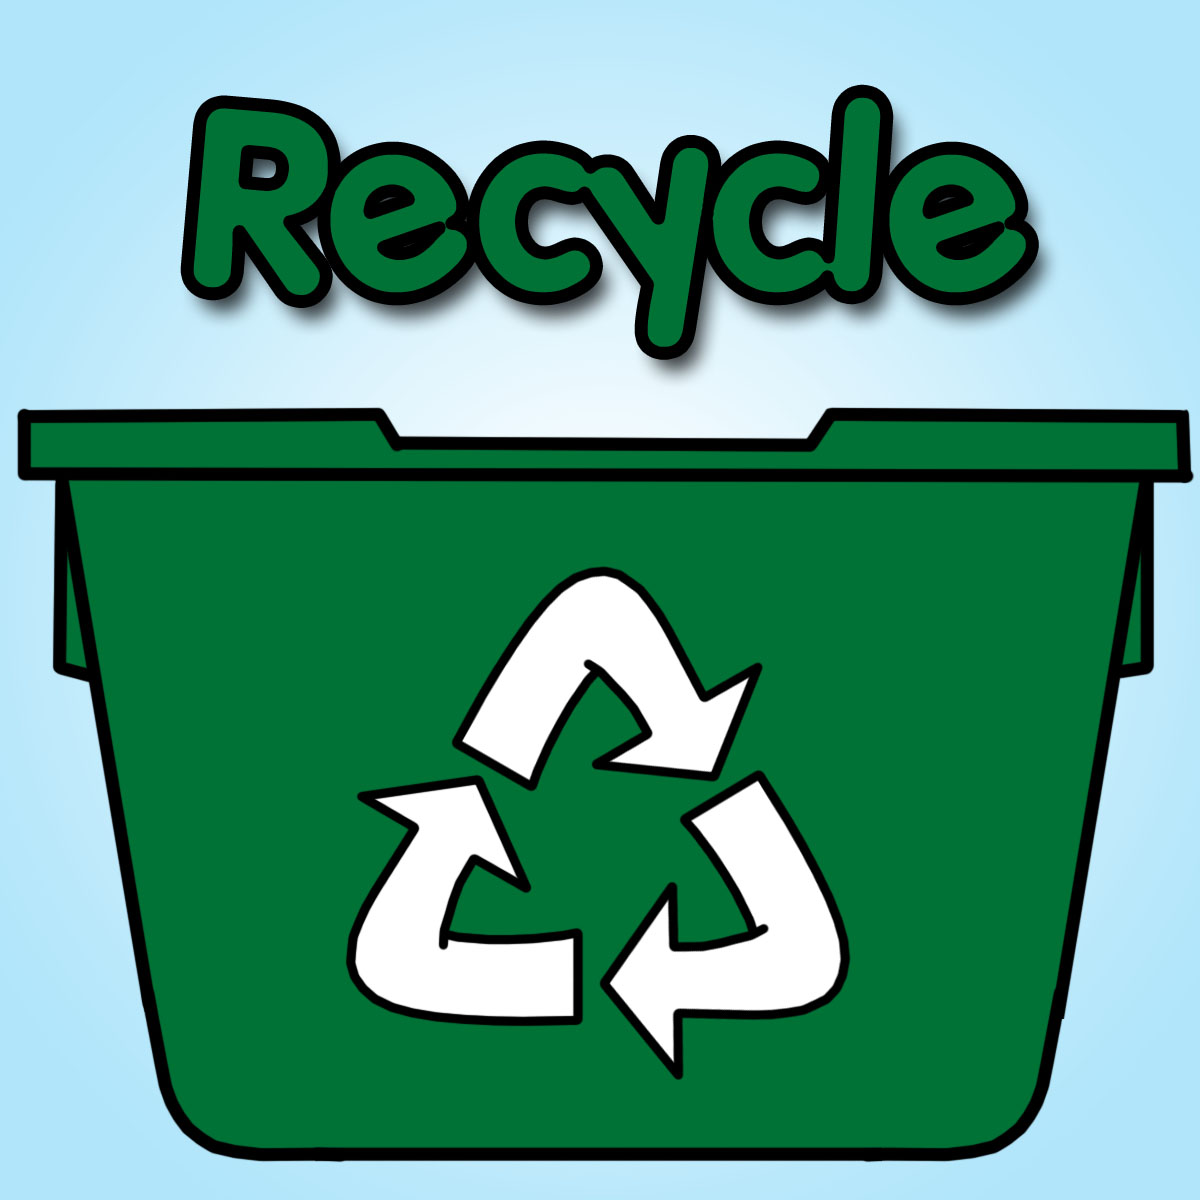 Recycle Clipart Kid-Recycle clipart kid-10